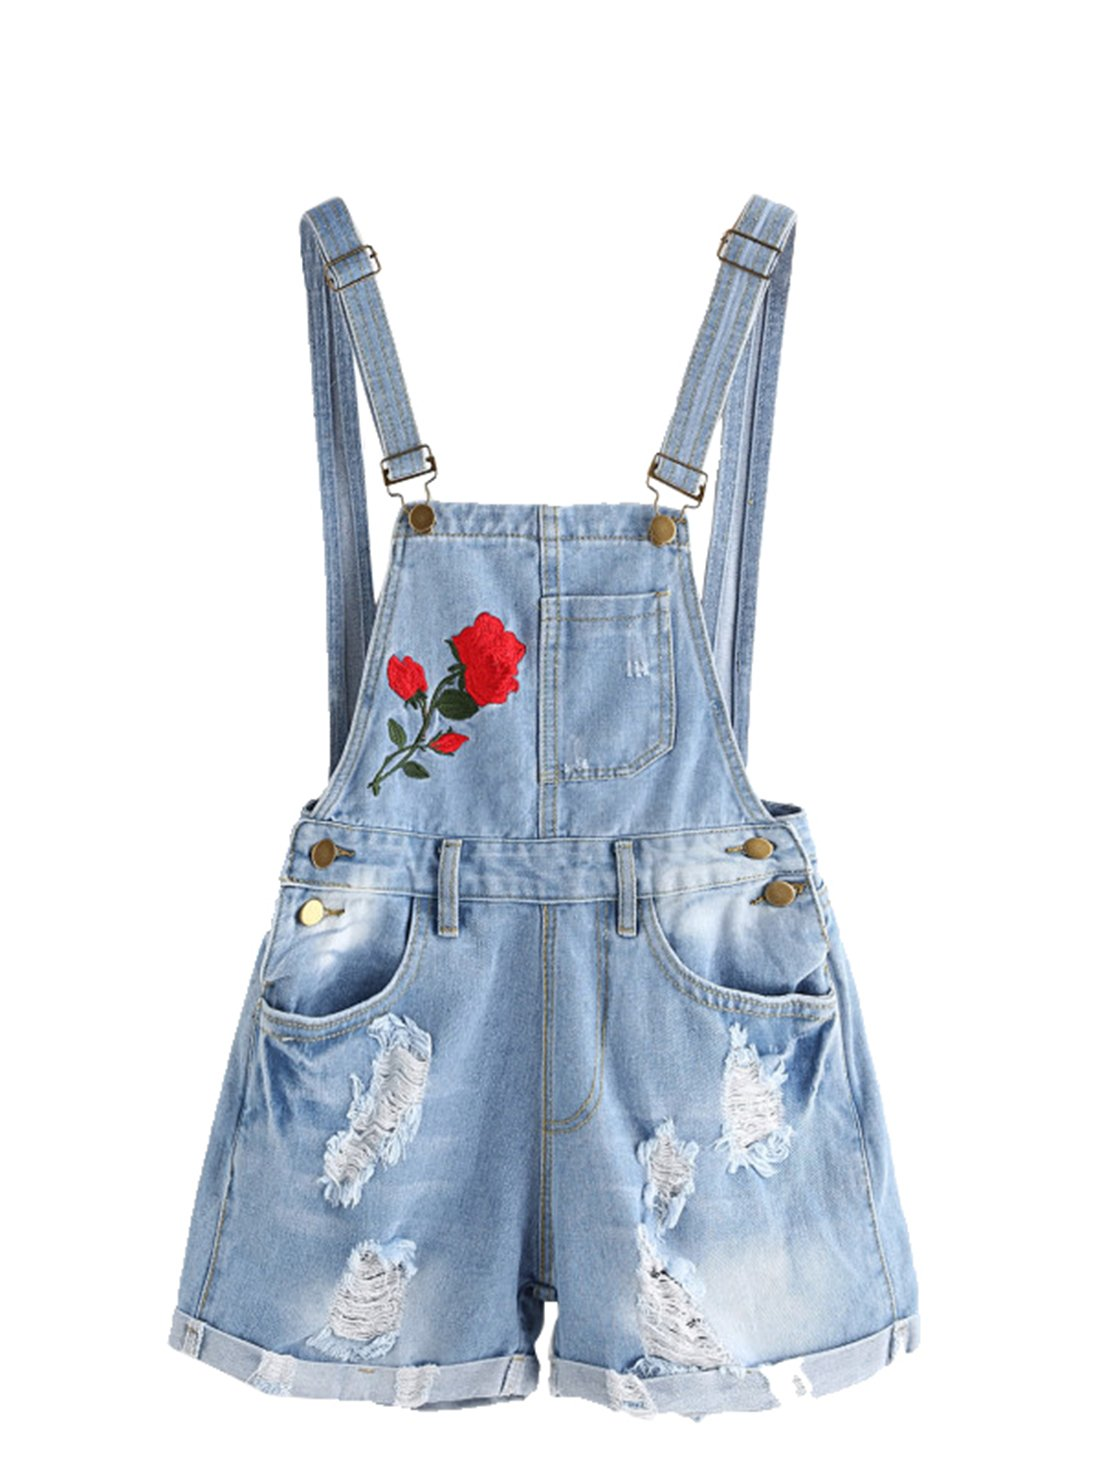 74b7c97c7cff Get Quotations · MakeMeChic Women s Ripped Distressed Denim Overall Shorts  Romper